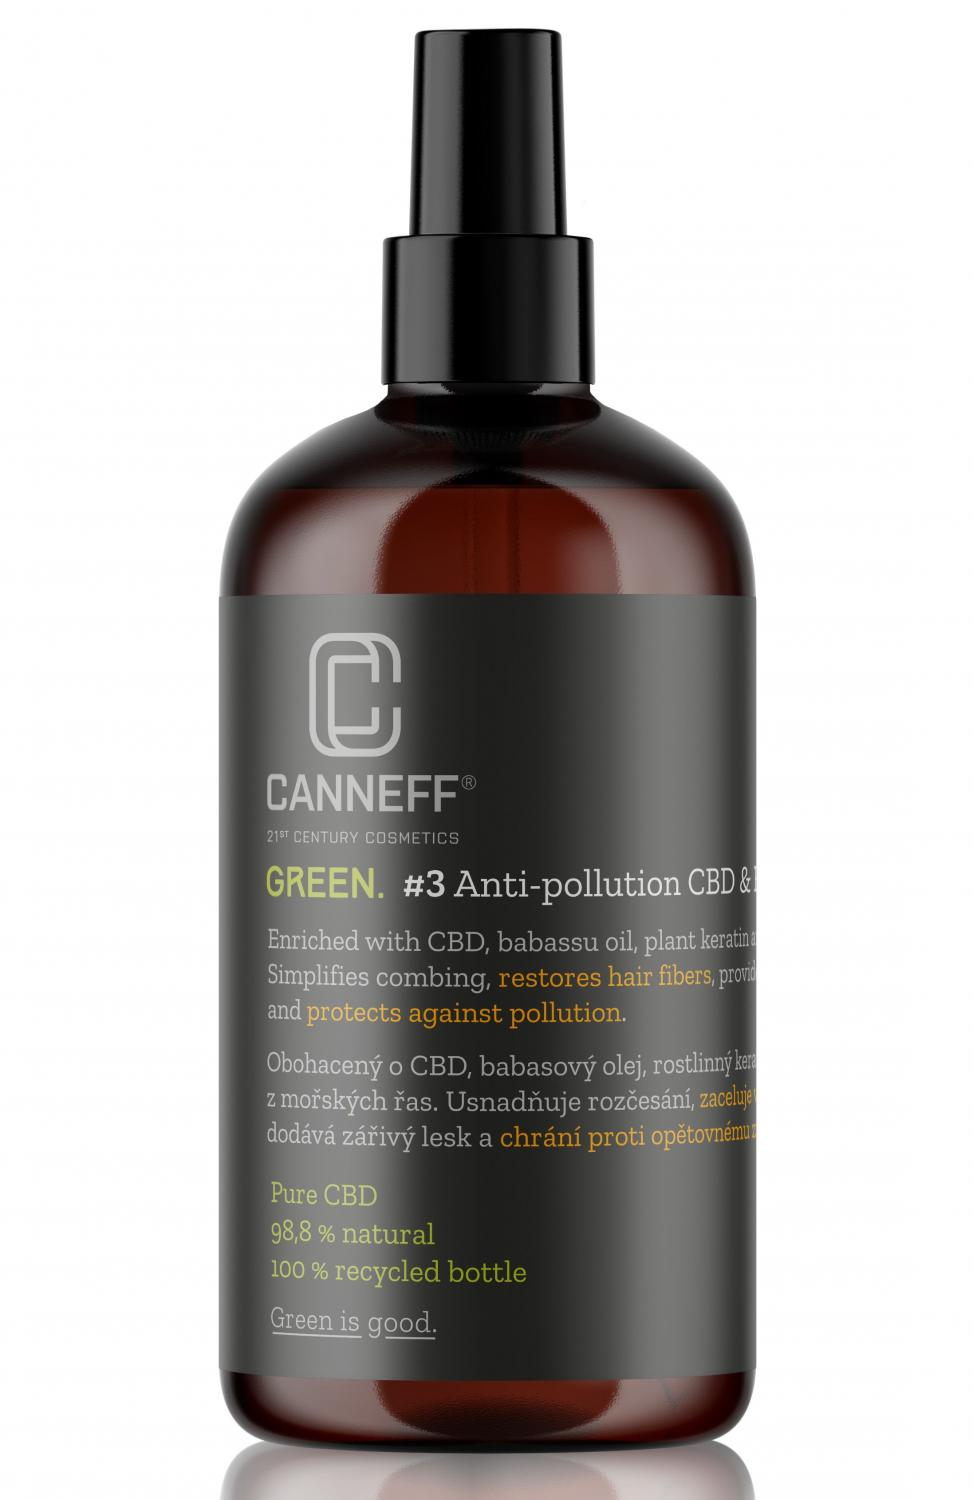 CANNEFF® Green #3 Anti-pollution CBD and Plant Keratin Hair Spray Foto: Canneff